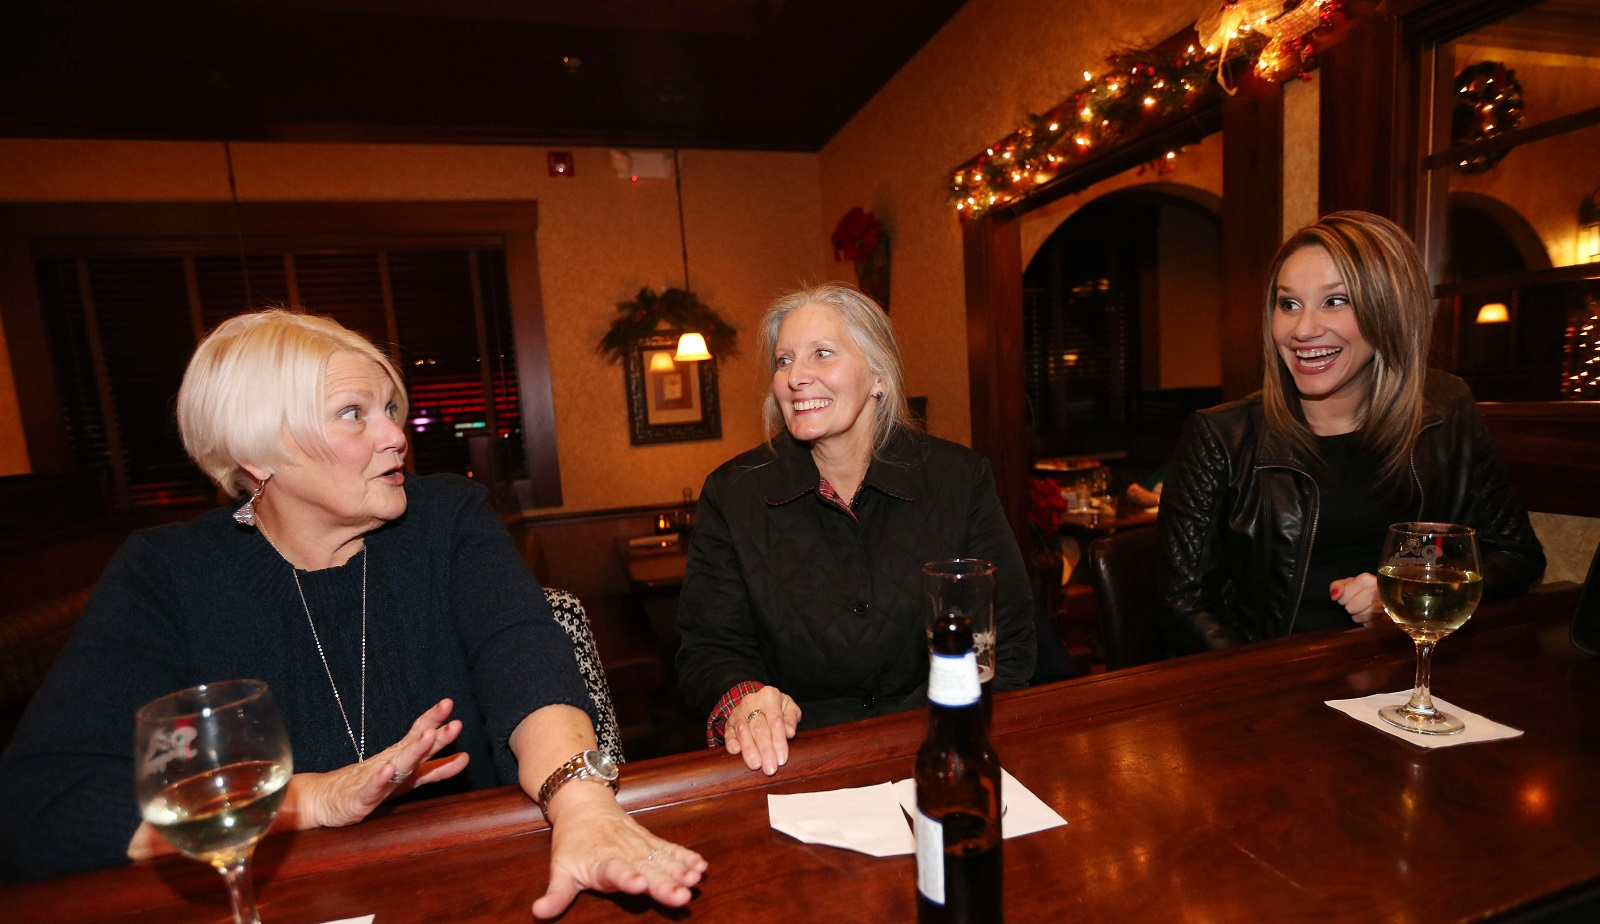 Pasquale's at 3720 Seneca St. in West Seneca has an intimate bar area.  Hanging out from left are Carol Roswell of Angola, Sandy Heltz of Hamburg and Darcy Mirowski, of Angola.  The three have gotten together there every Thursday for the past five years. (Sharon Cantillon/Buffalo News)